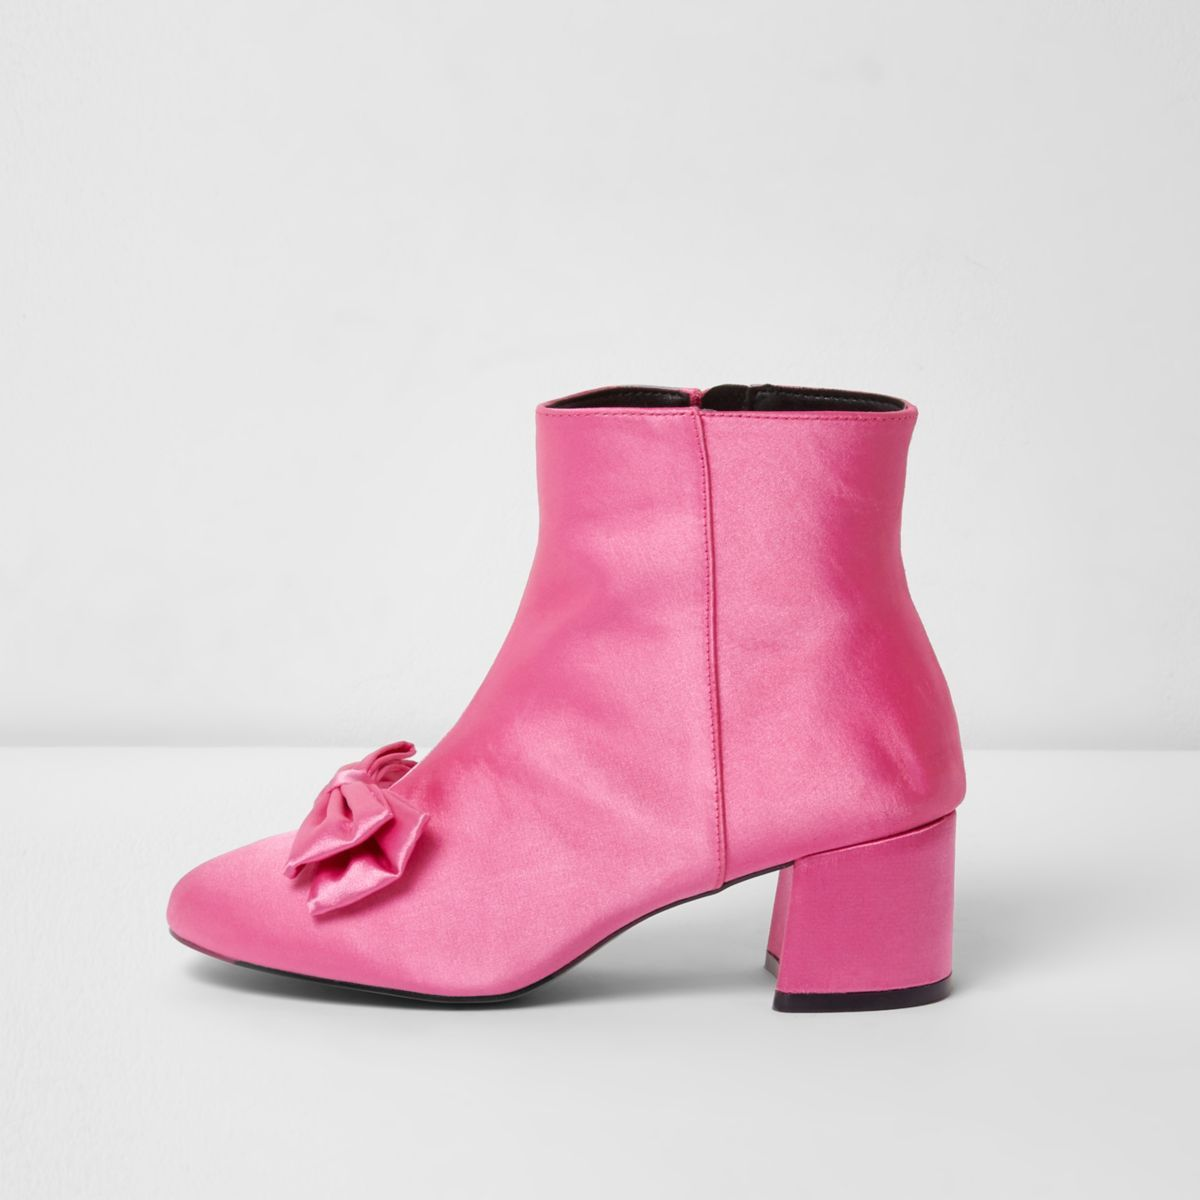 6eda2de1b4e Pink Satin Bow block heel ankle boots.   Wish List   Suede ankle ...